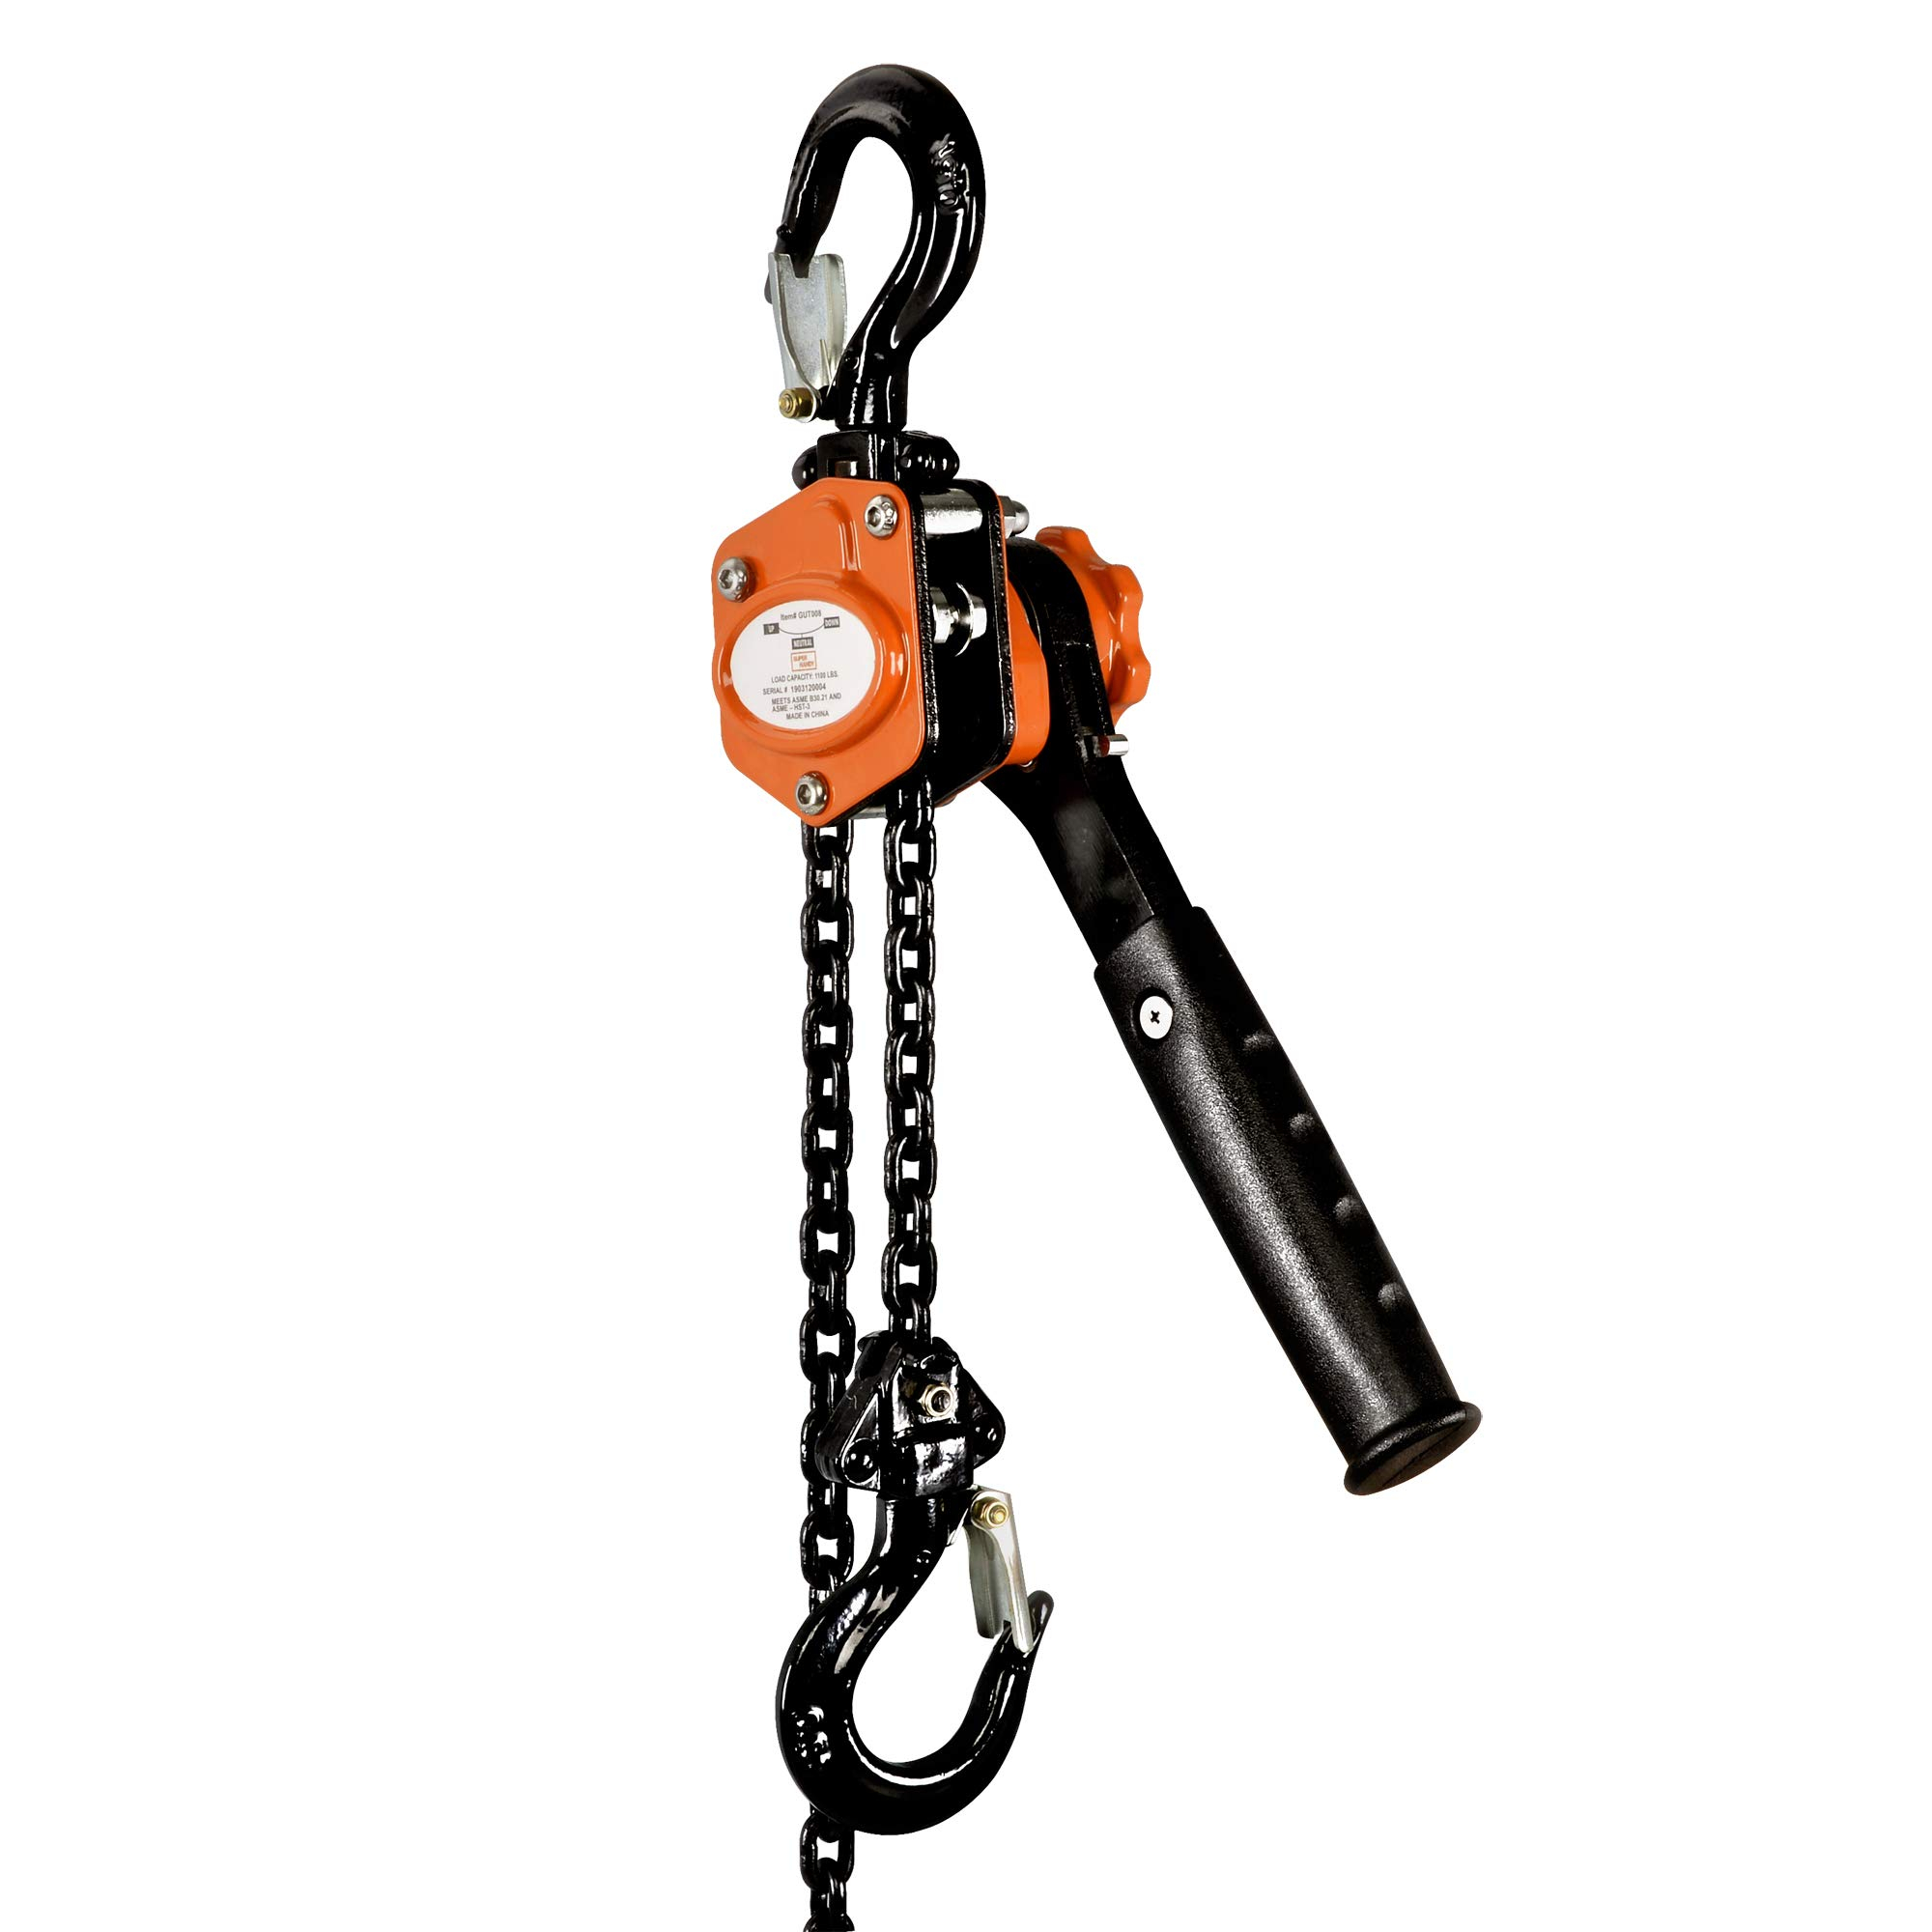 SuperHandy Mini Lever Hoist Come Along 1/2 TON 1100 LBS Capacity 5FT Lift 2 Heavy Duty Hooks Commercial Grade Steel for Lifting Pulling Construction Building Garages Warehouse Automotive Machinery